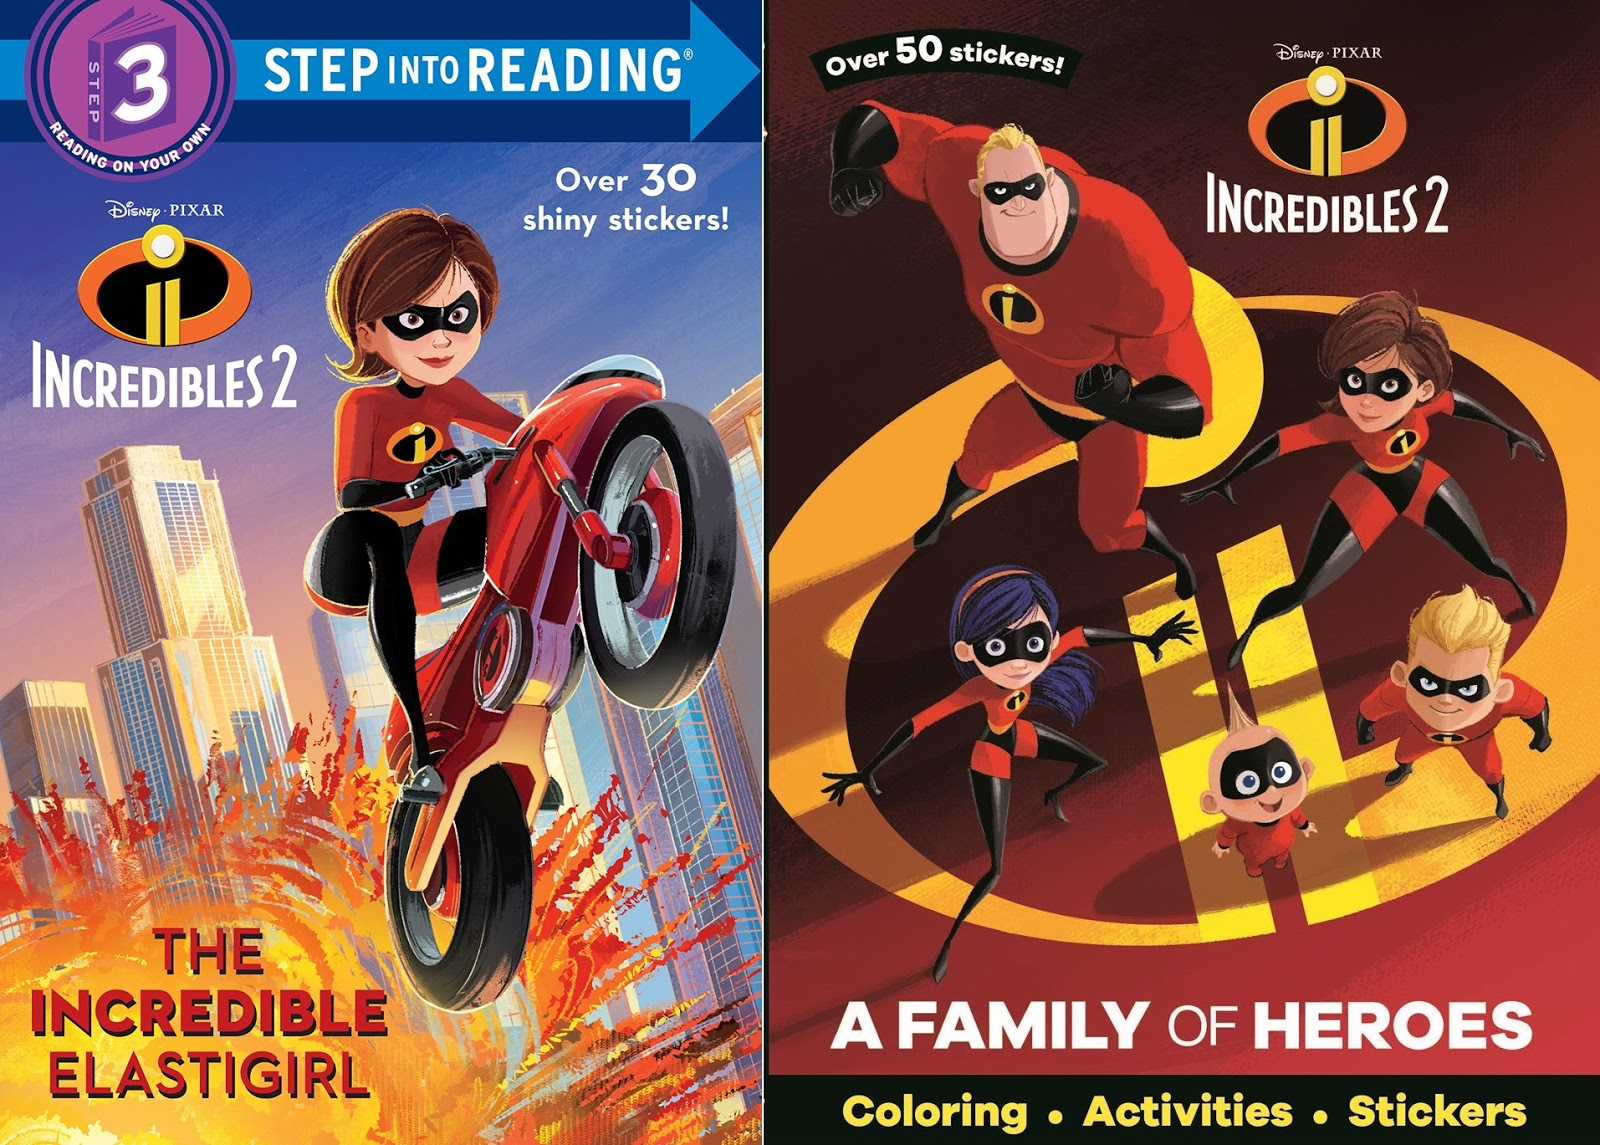 39 The Art of Incredibles 2 39 amp Other